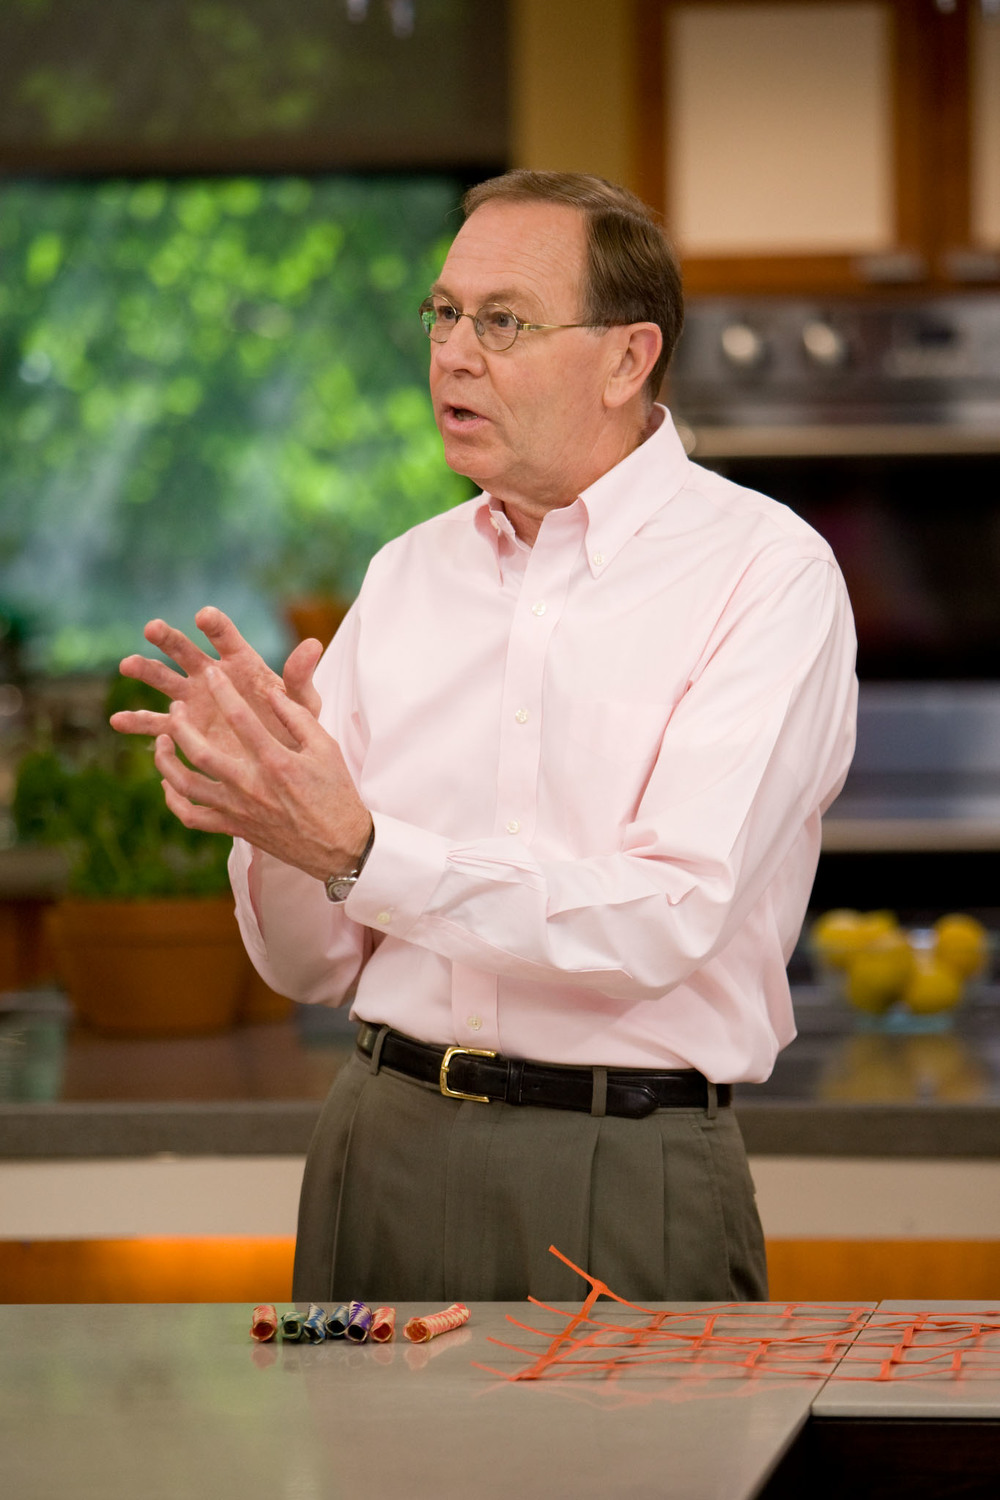 Food scientist Guy Crosby is the science editor of America's Test Kitchen.